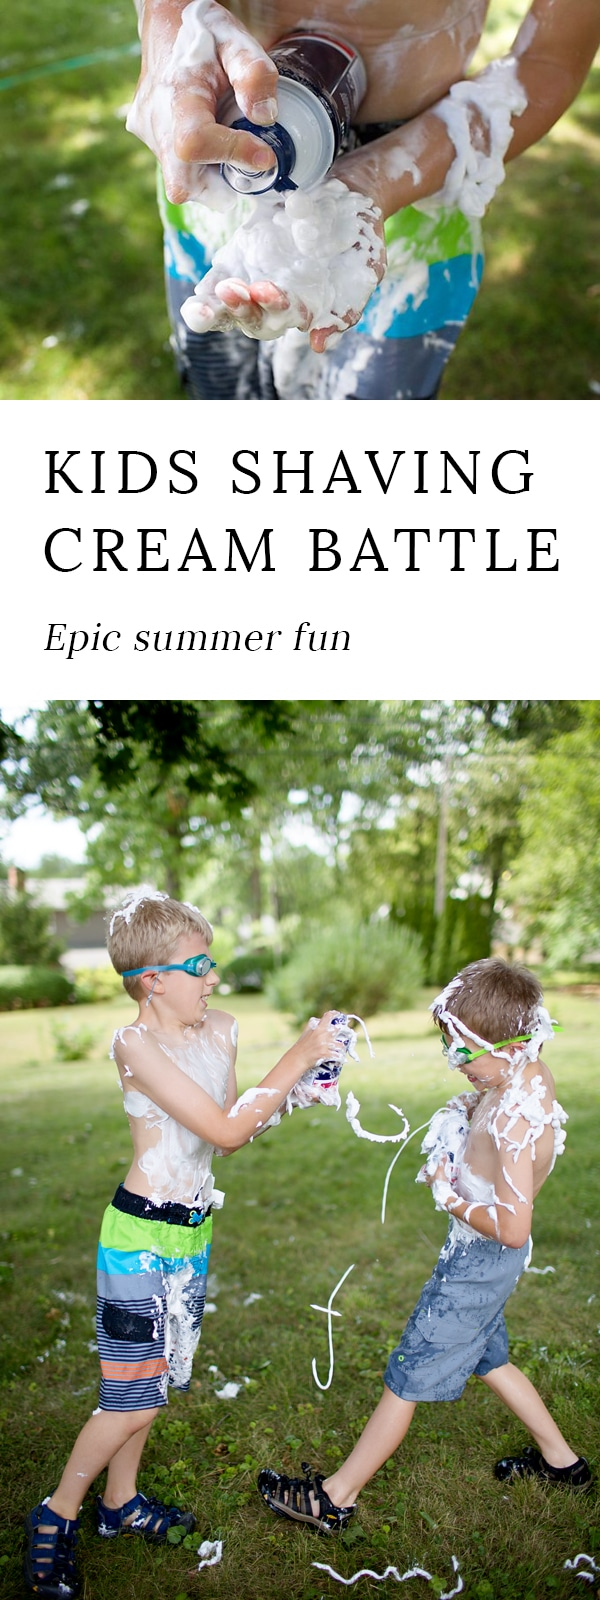 Make this summer unforgettable! Enjoying a Shaving Cream Battle is the perfect way to connect as a family, share laughter, and enjoy a beautiful summer day.